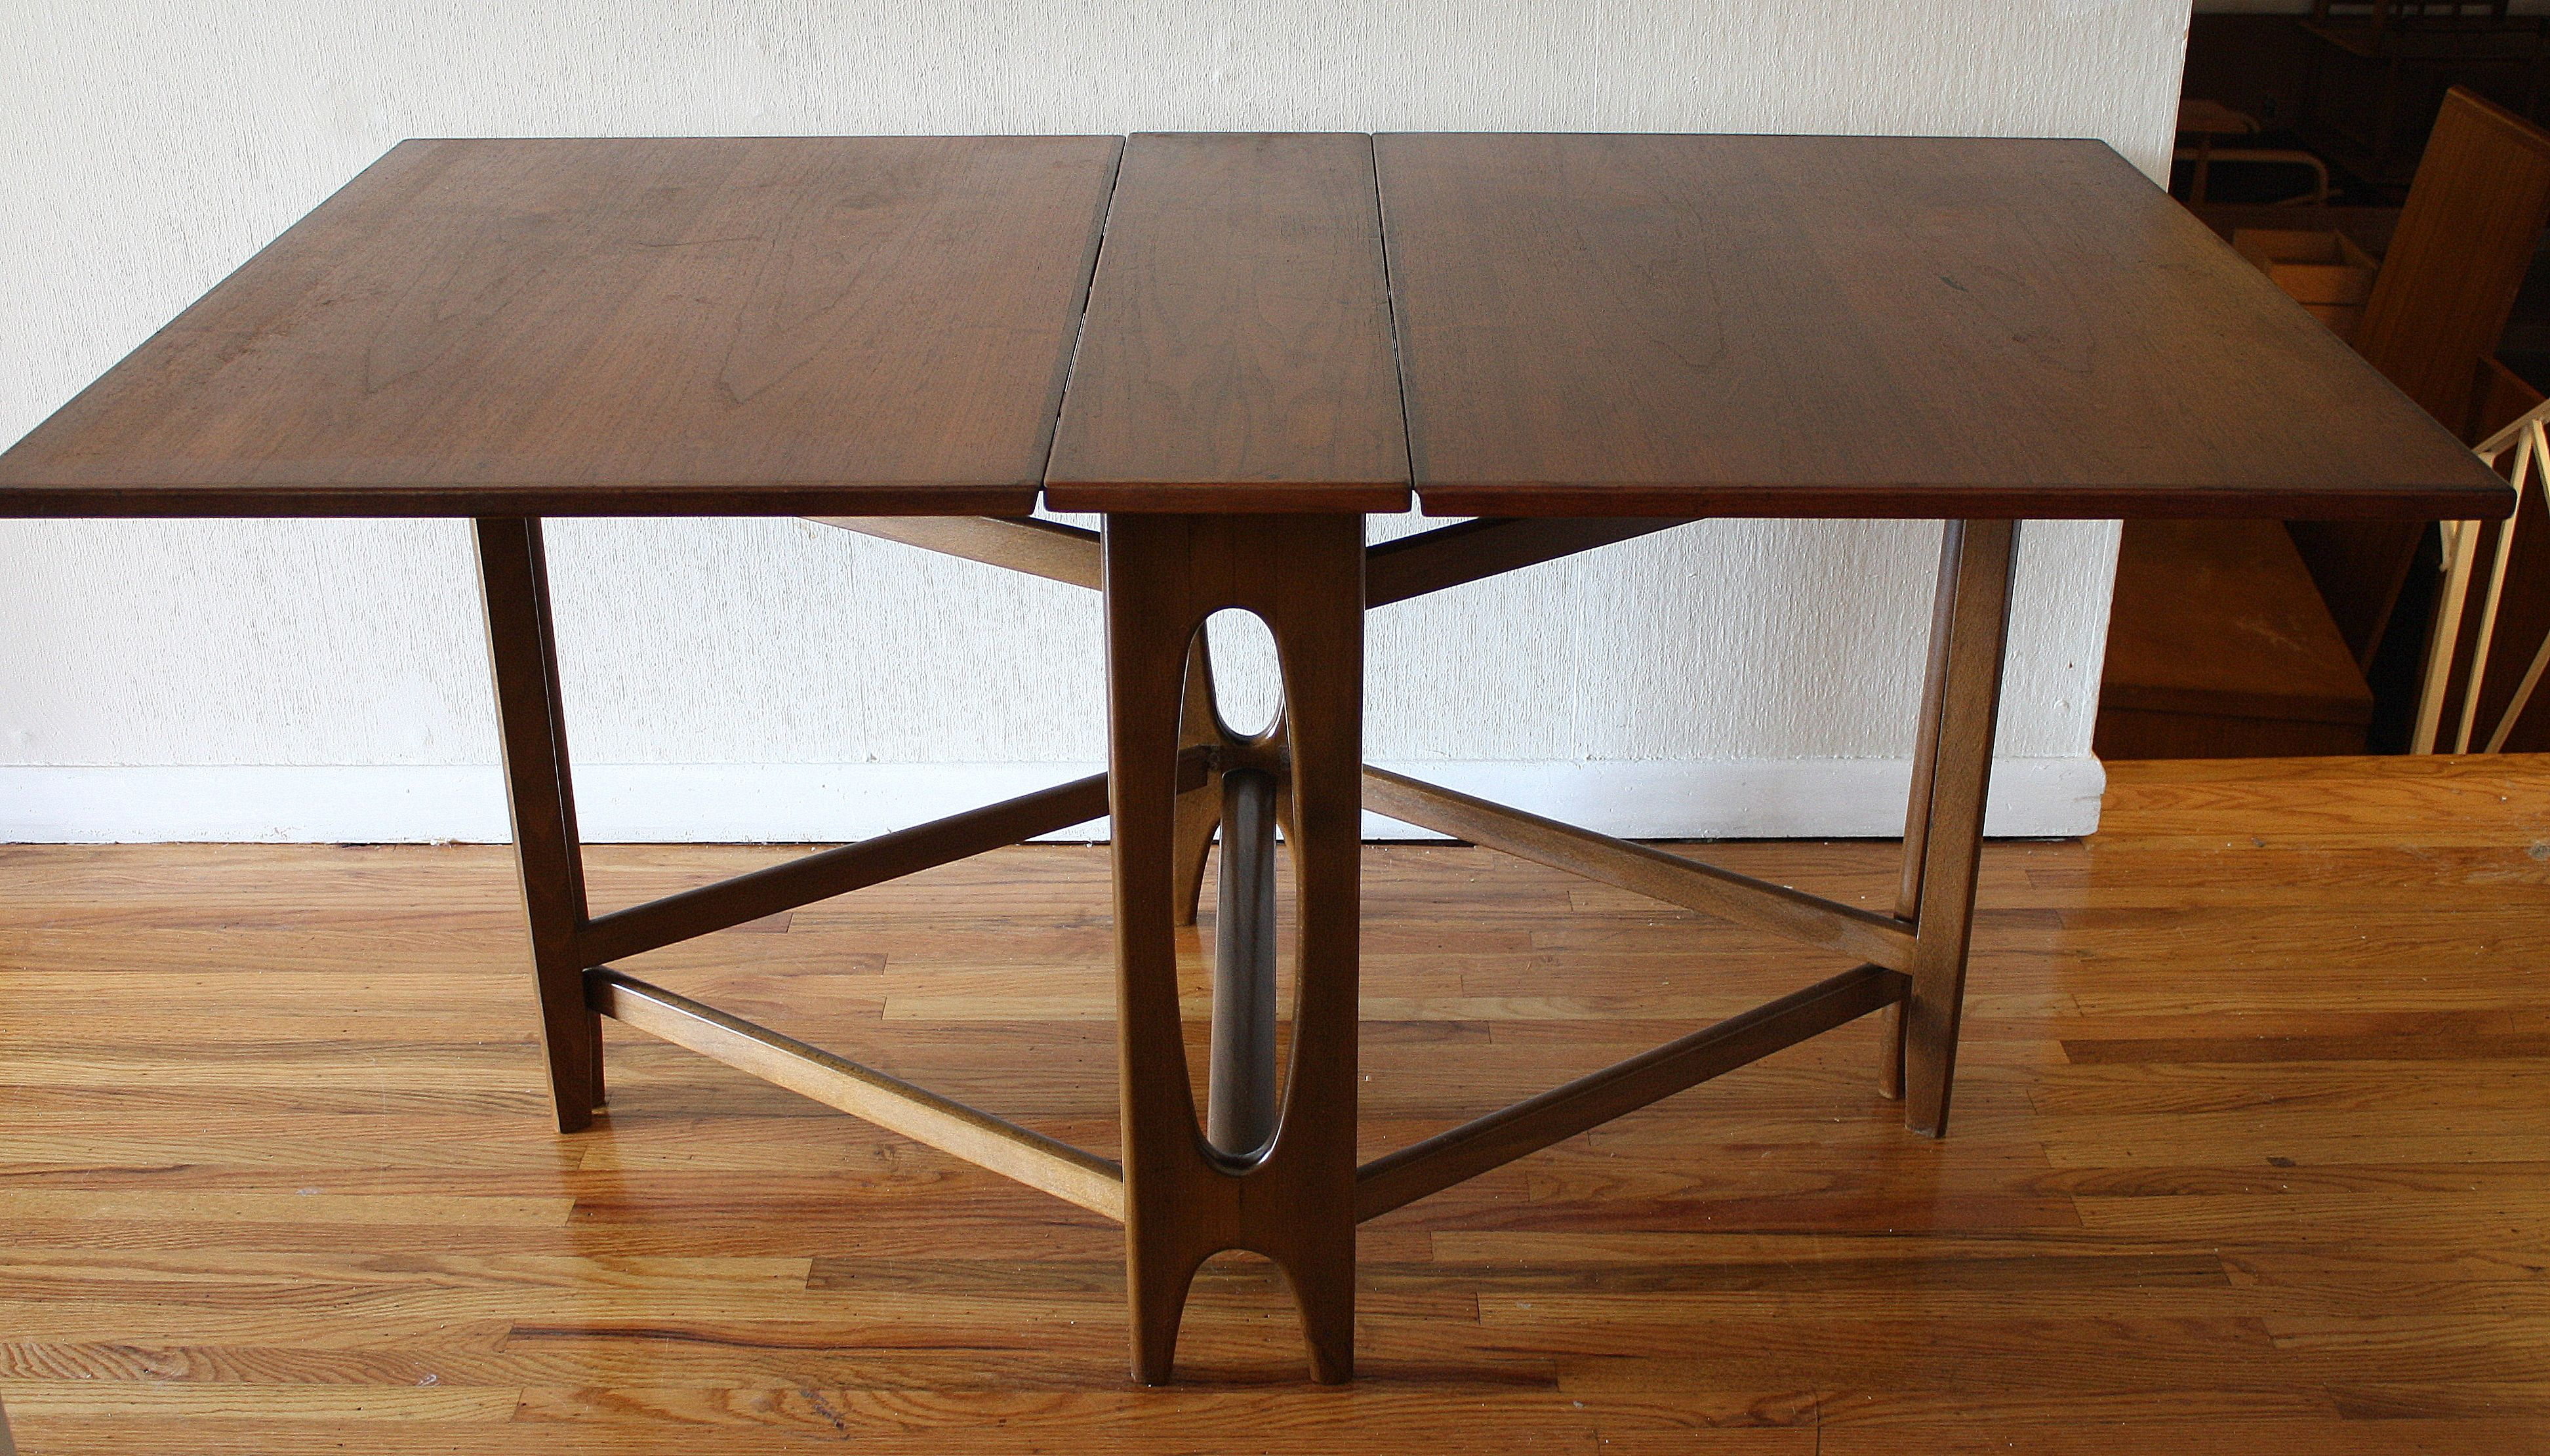 Danish Mid Century Modern Folding Dining Table   This Is A Danish Style Mid  Century Modern Dining Table. It Is Made Of Solid Wood And Both Sides Of The  ...